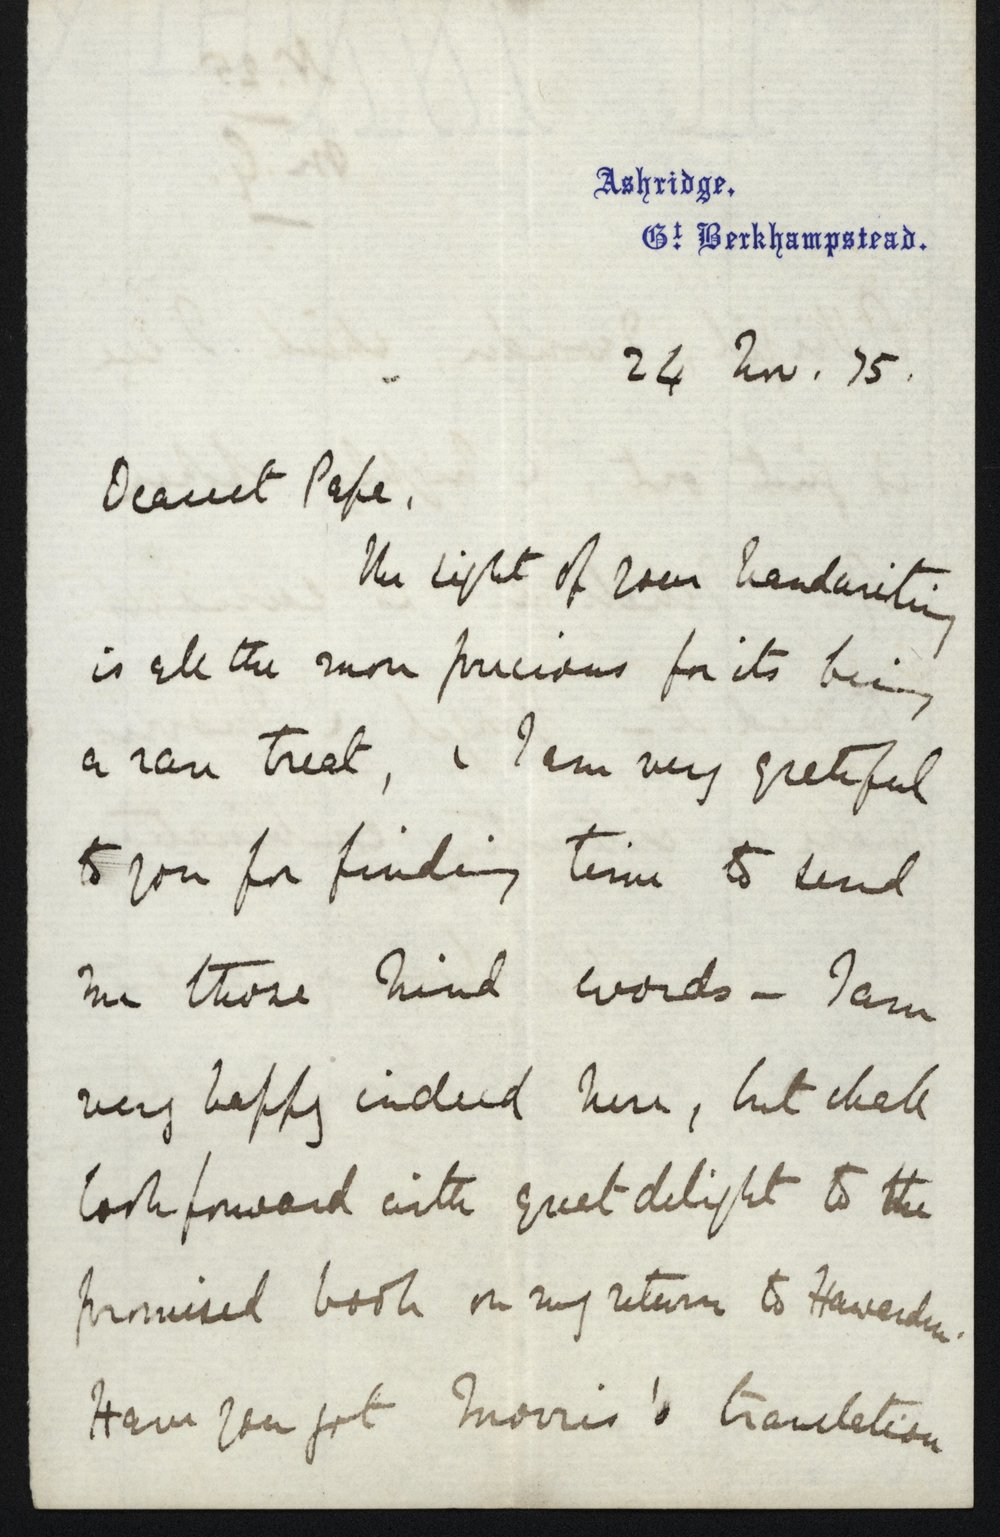 Mary Gladstone to W.E. Gladstone, 24 November 1875. The Flintshire Record Office, GG 603. All images used with permission. See the end of the post for the transcription.